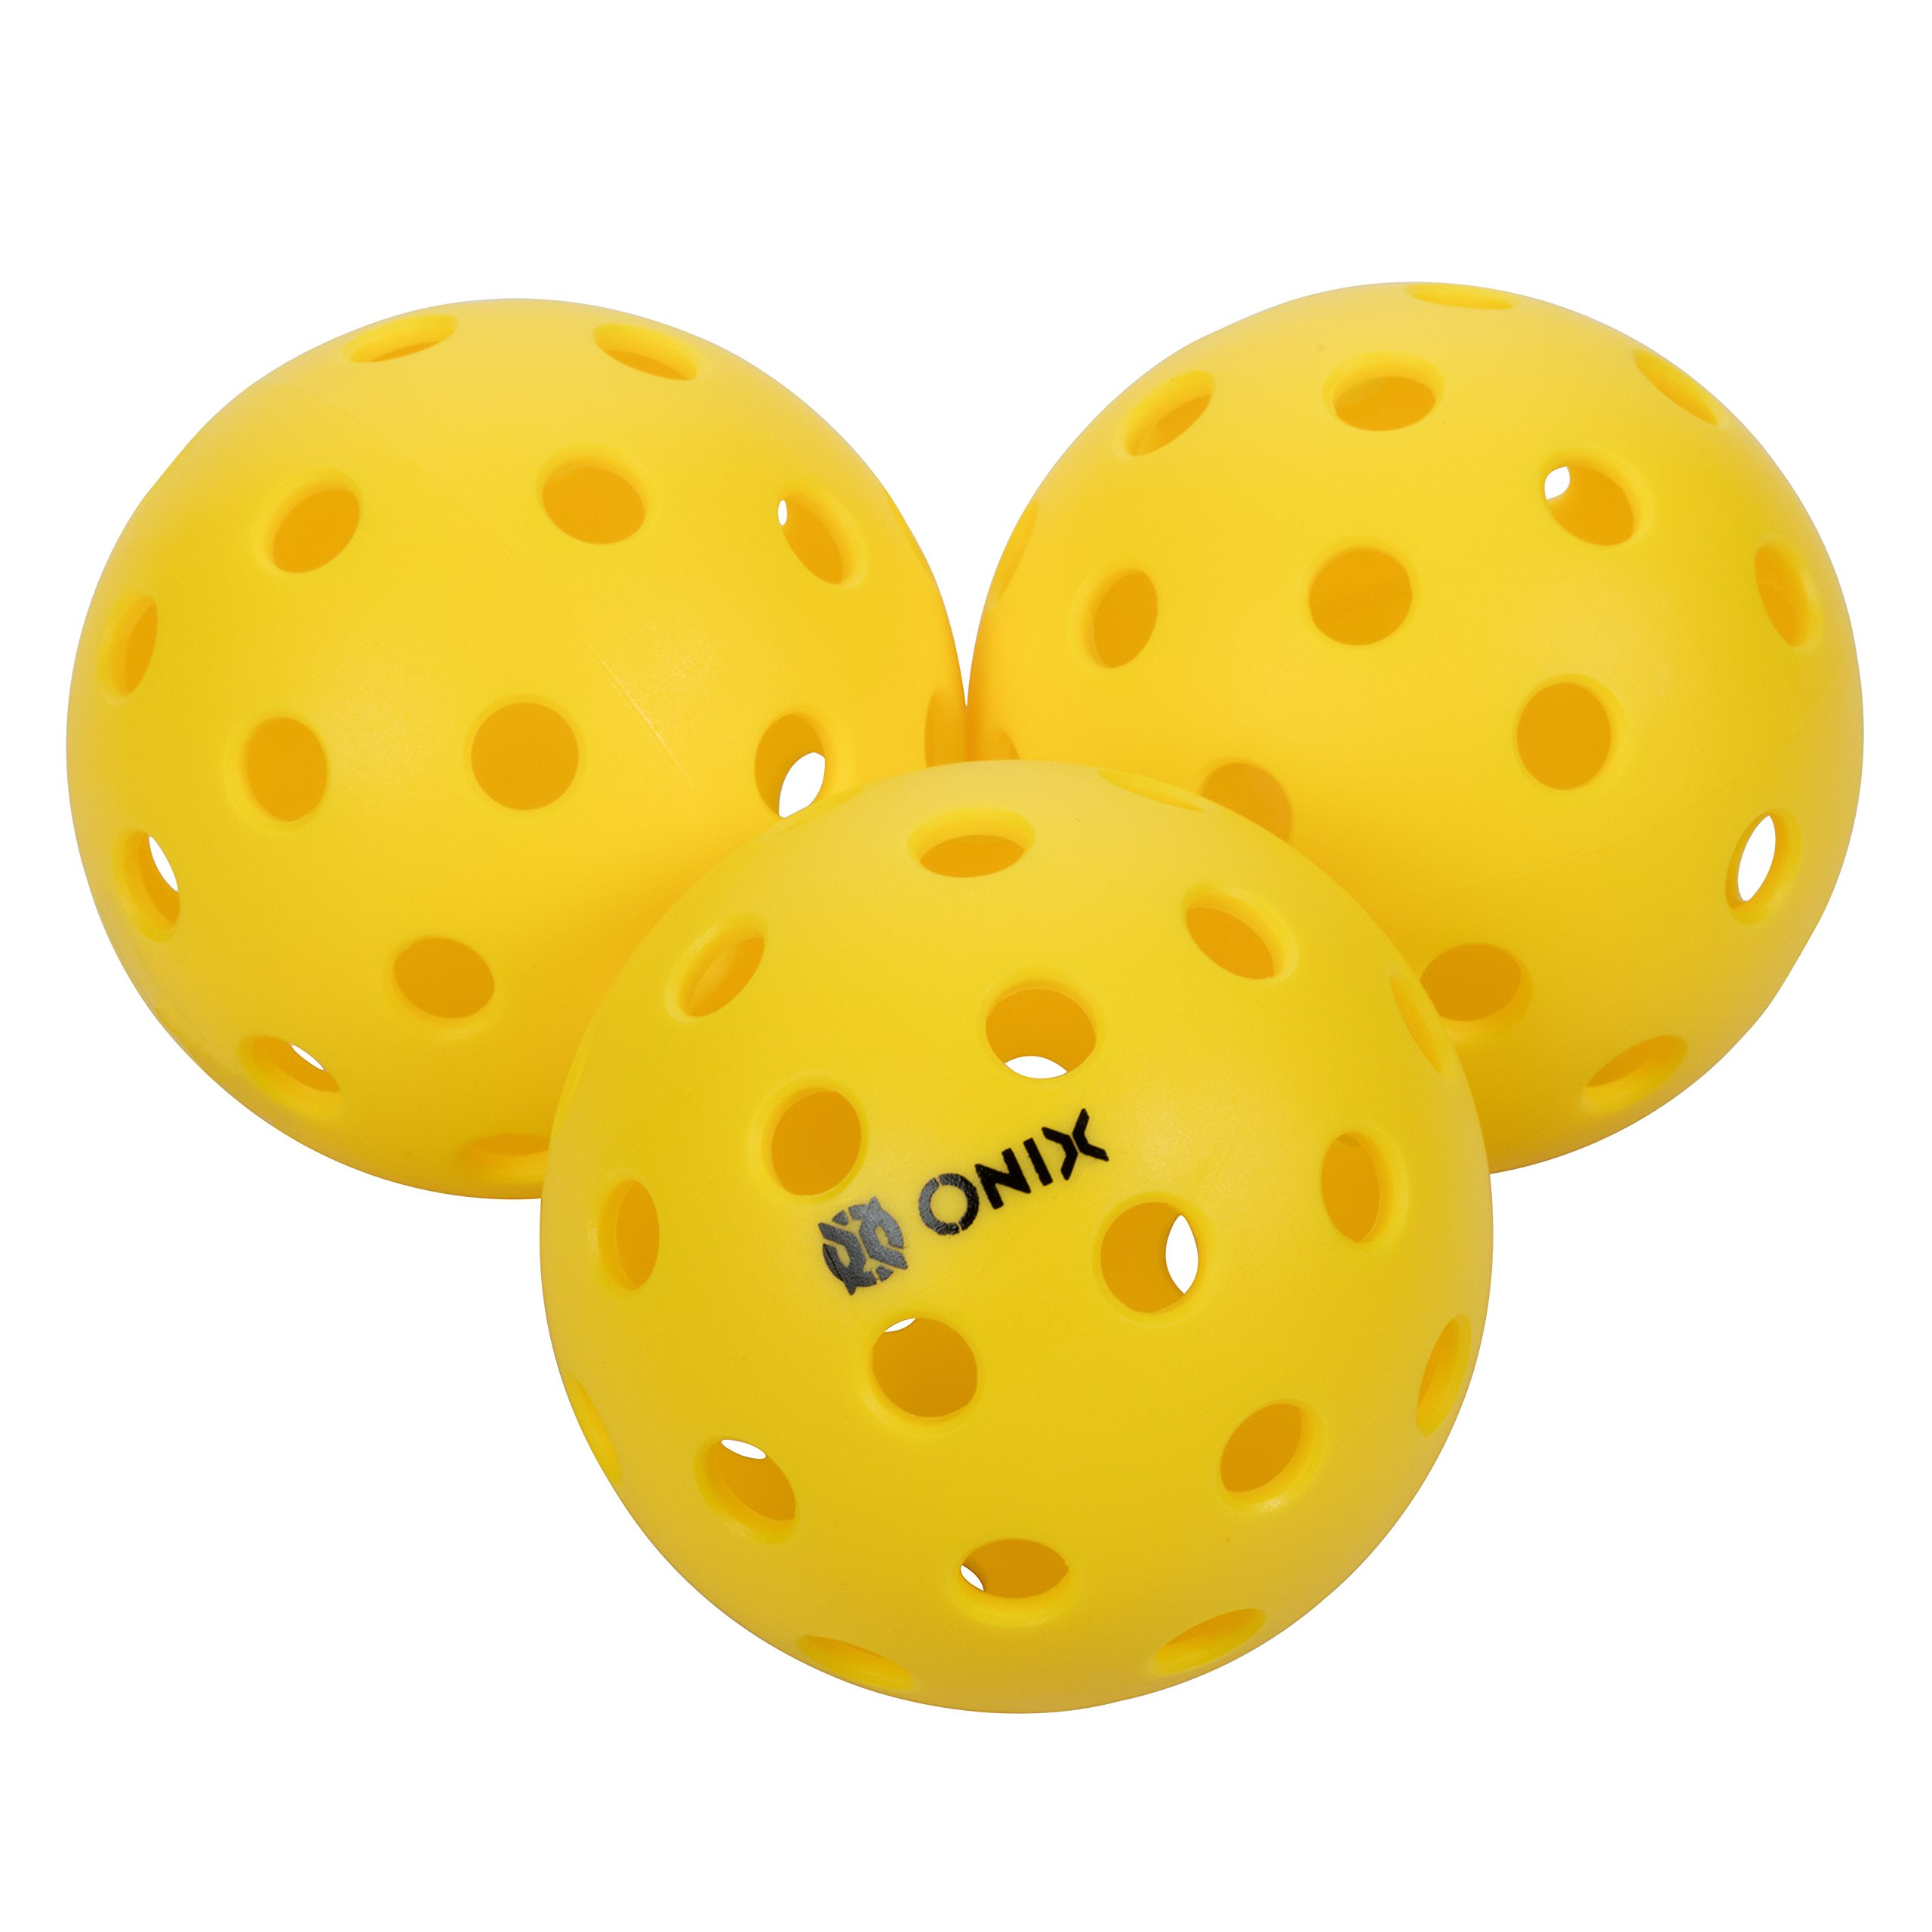 Onix Pure 2 Outdoor Pickleball Balls Weighted Heavier for Extreme Outdoor Conditions (Yellow, 3-Pack) by Onix